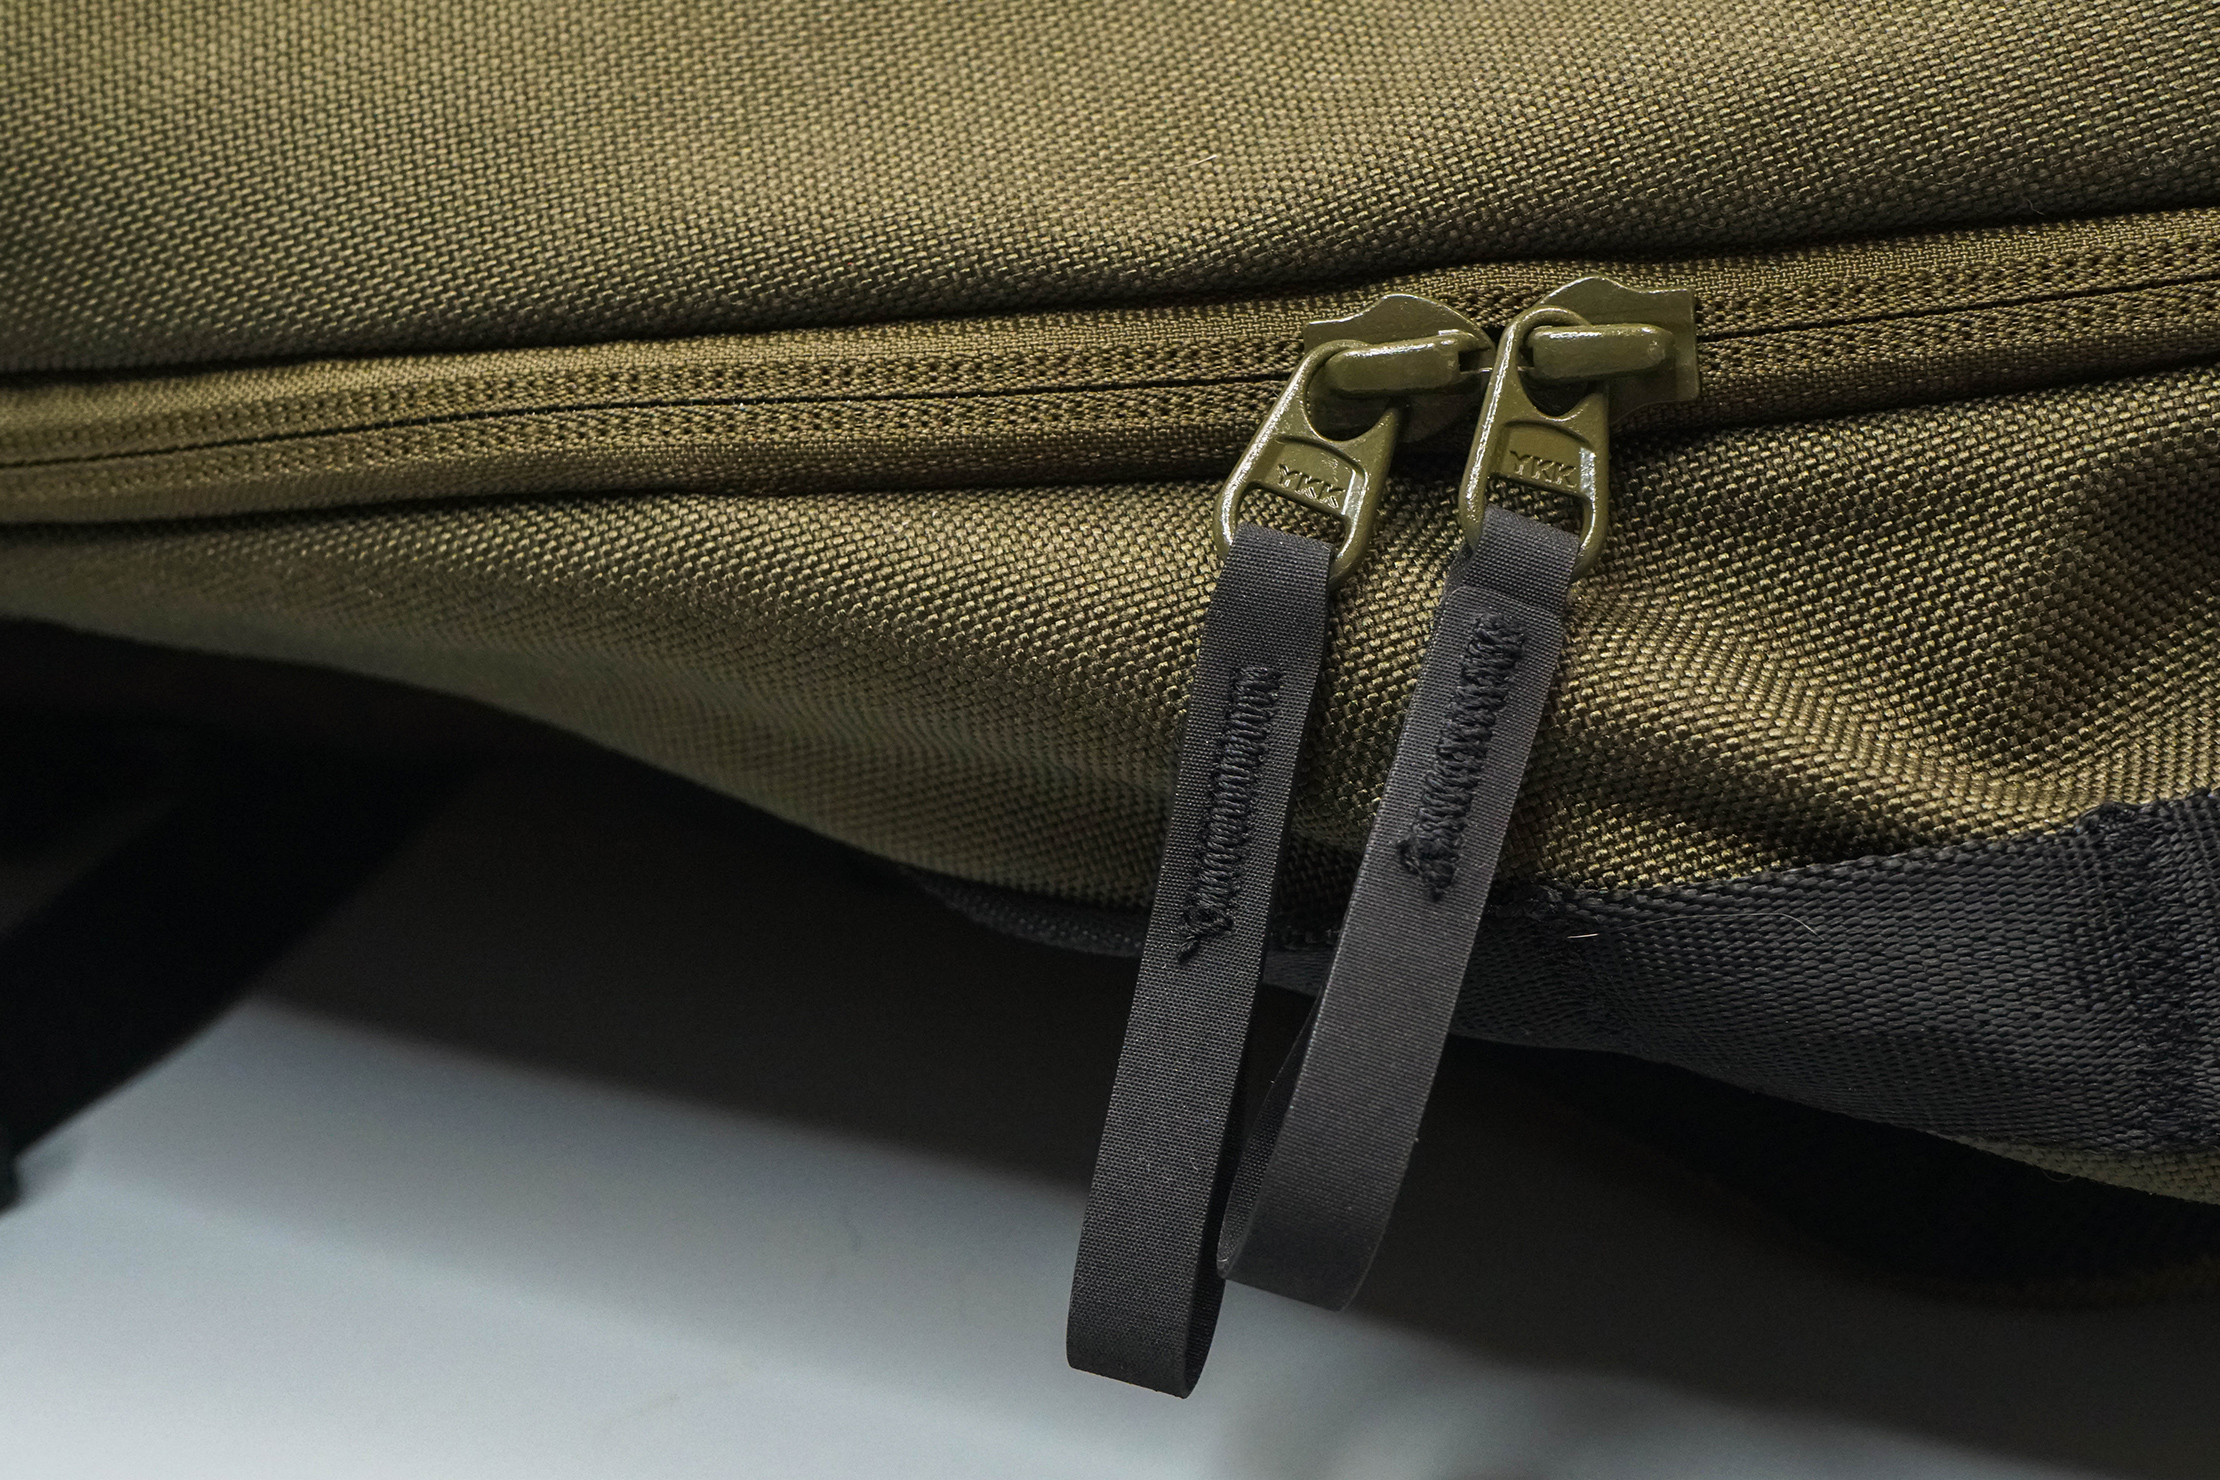 Able Carry Daily Backpack Zippers